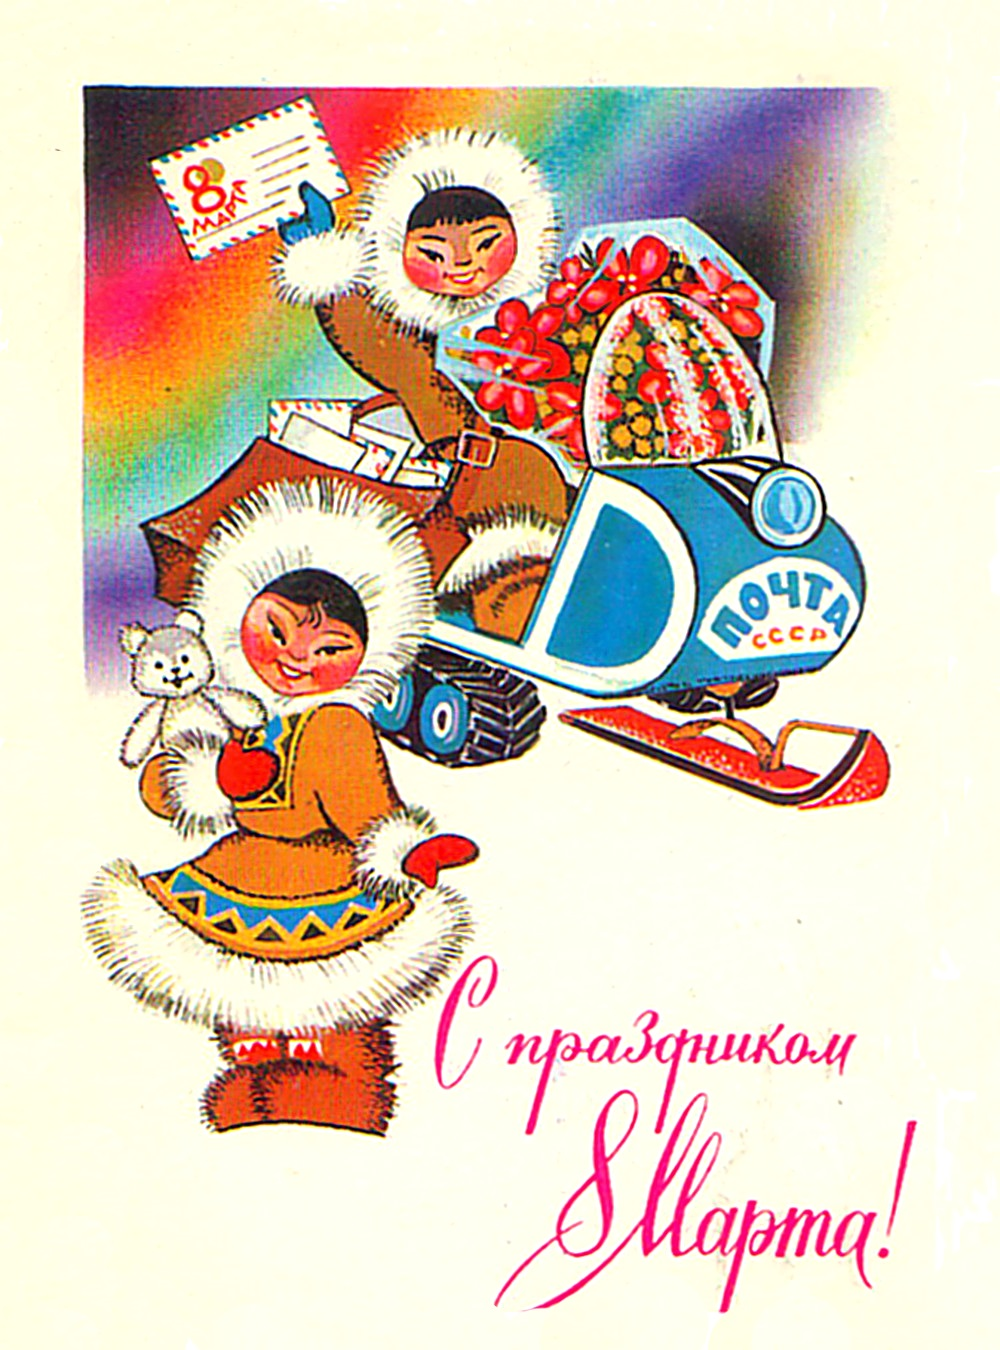 00 International Women's Day card 02. 1970s. 08.03.14